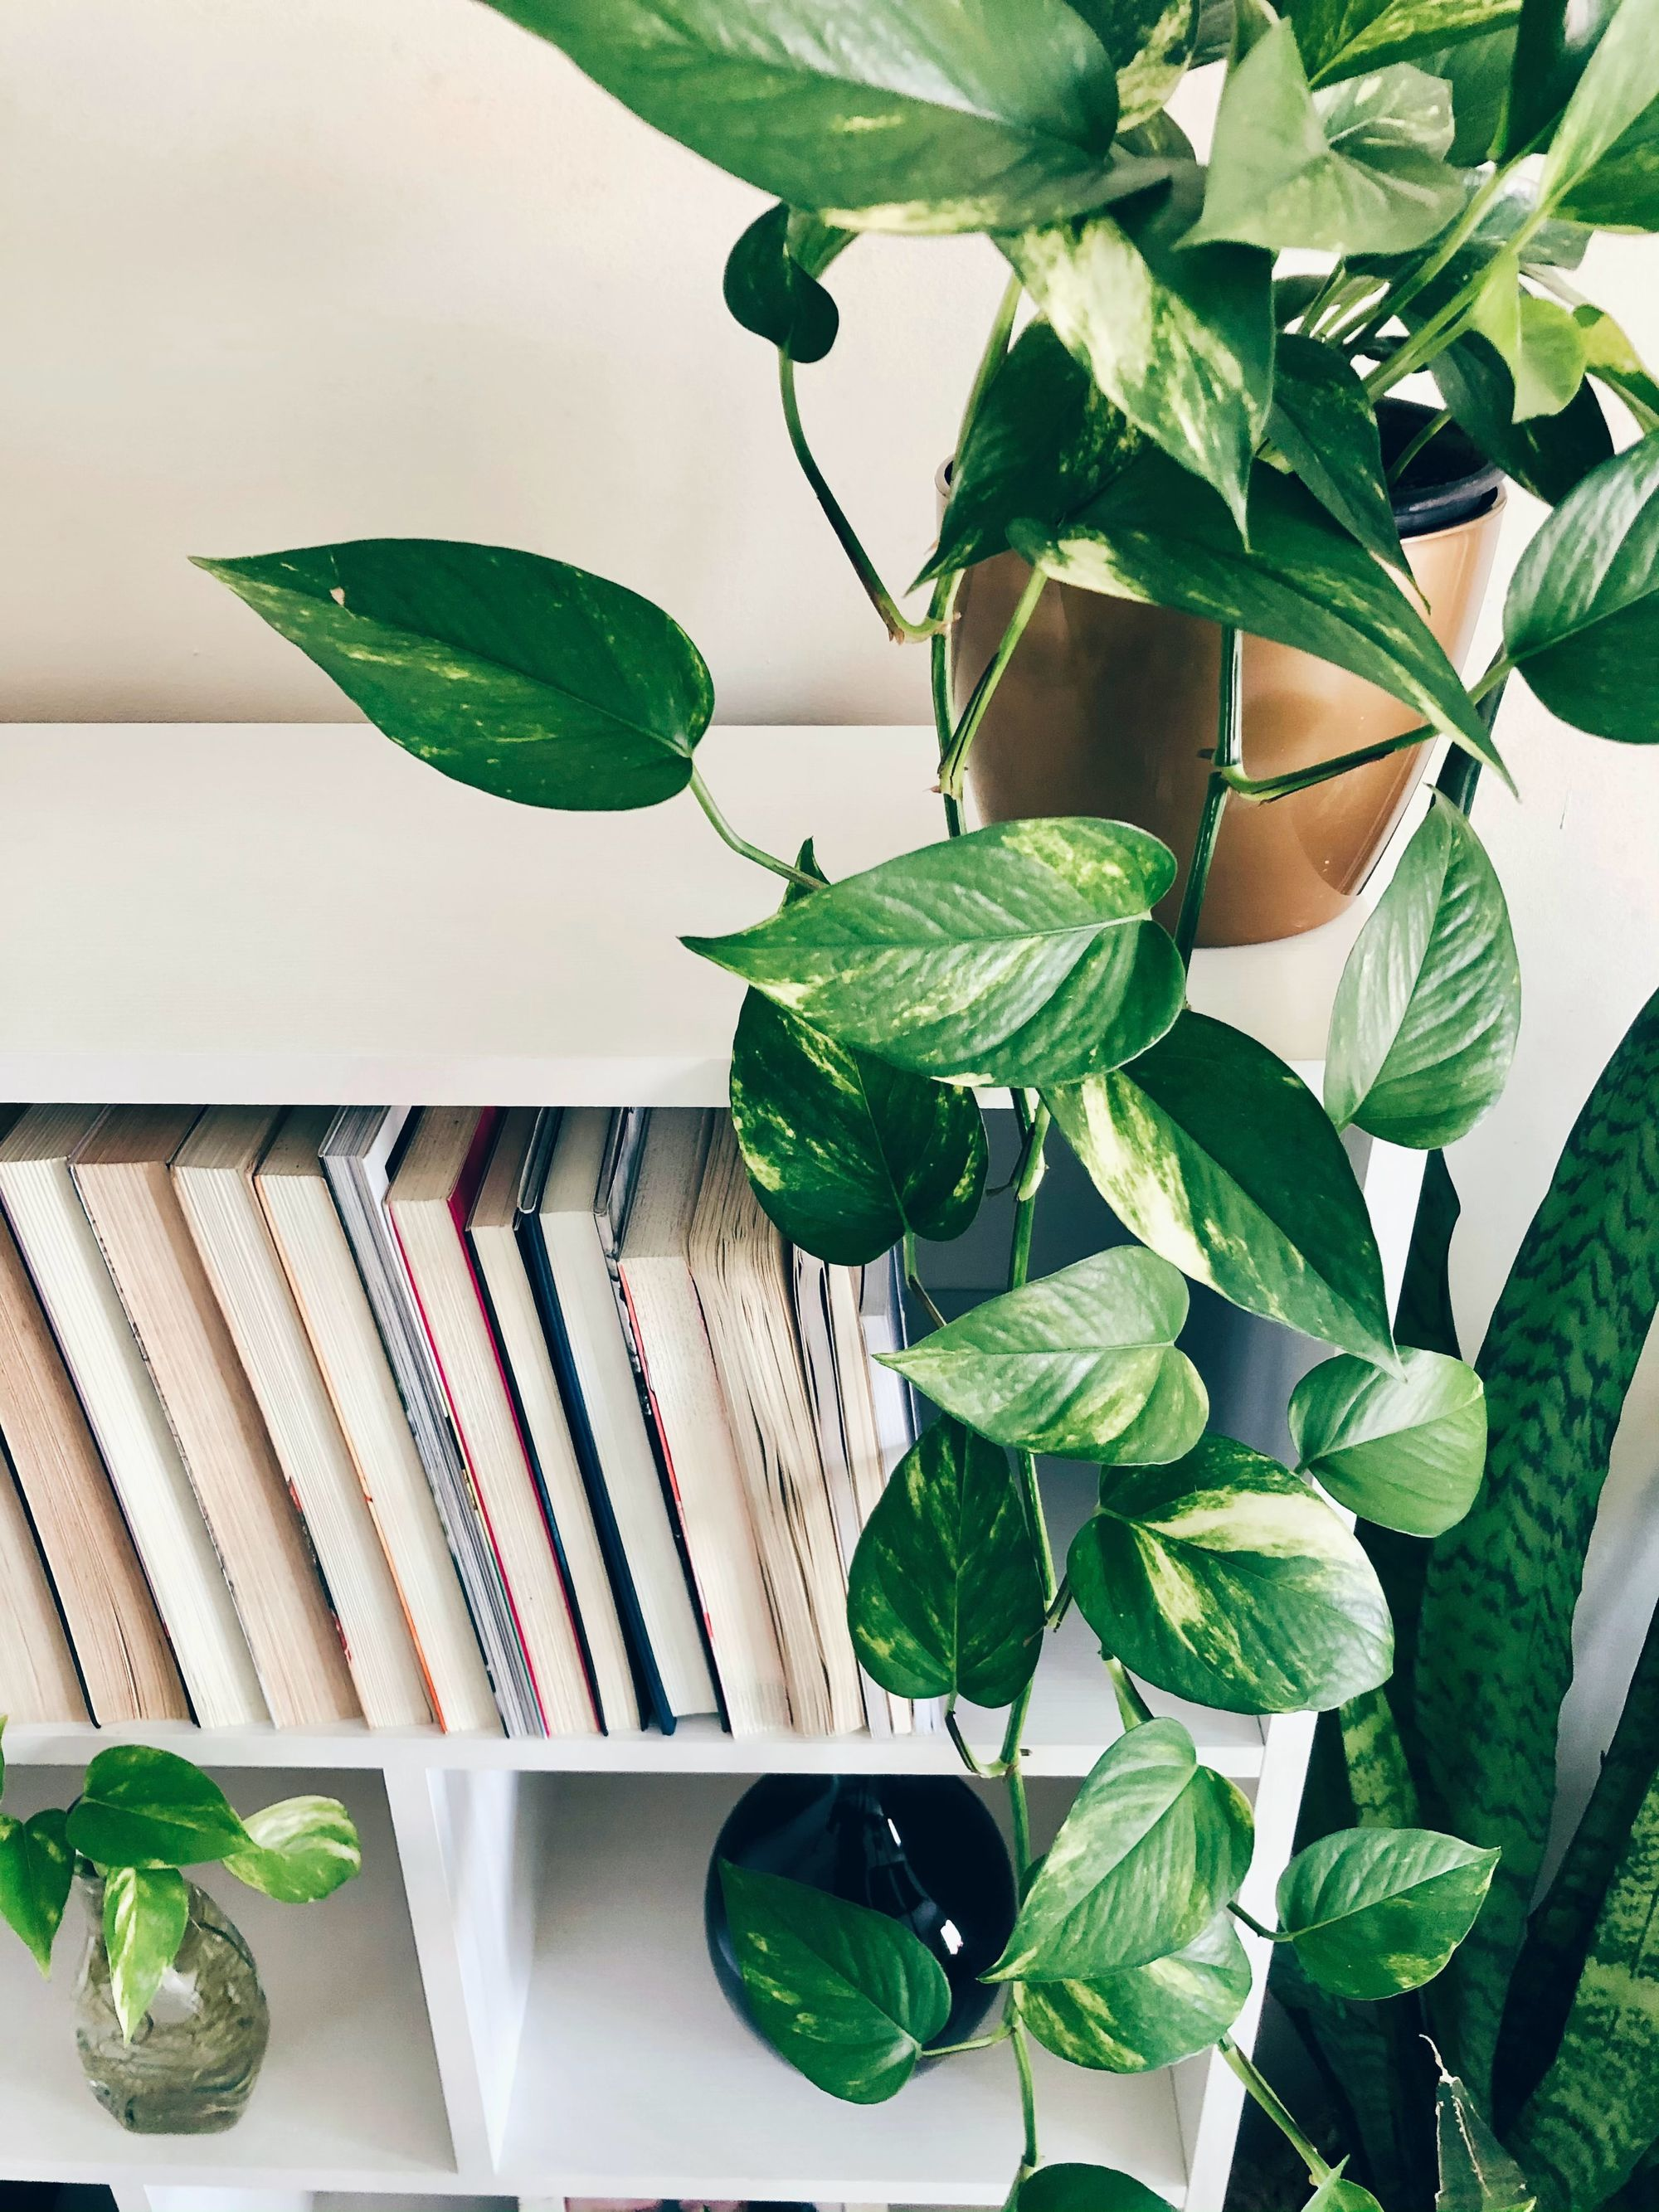 Also known as Devil's Ivy, Pothos is a resilient plant that thrives in spaces with little natural light